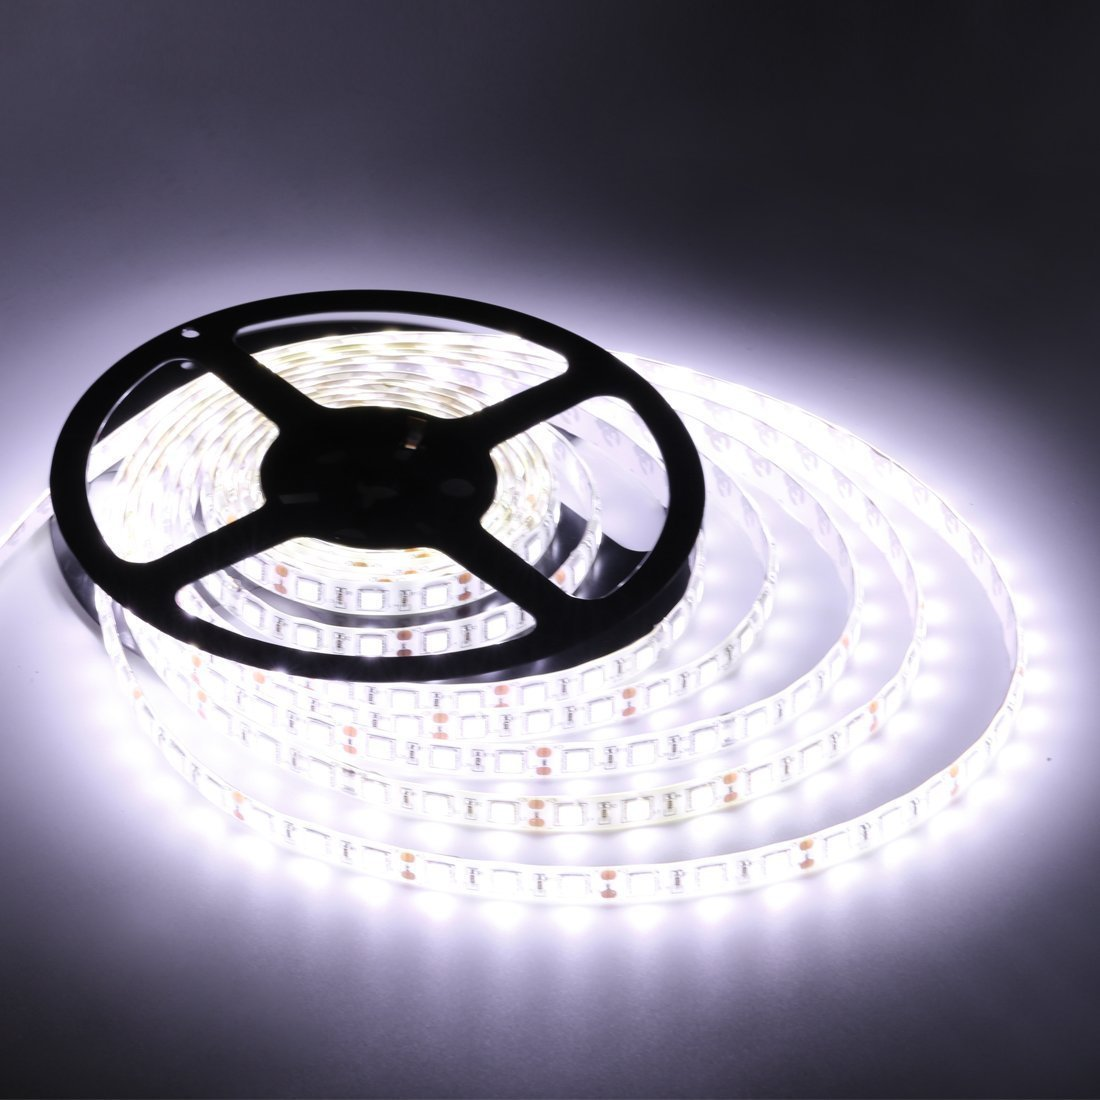 Amazon flexible led strip lights300 units smd 5050 ledsled amazon flexible led strip lights300 units smd 5050 ledsled strips waterproof12 volt led light strips pack of 164ft5mfor aloadofball